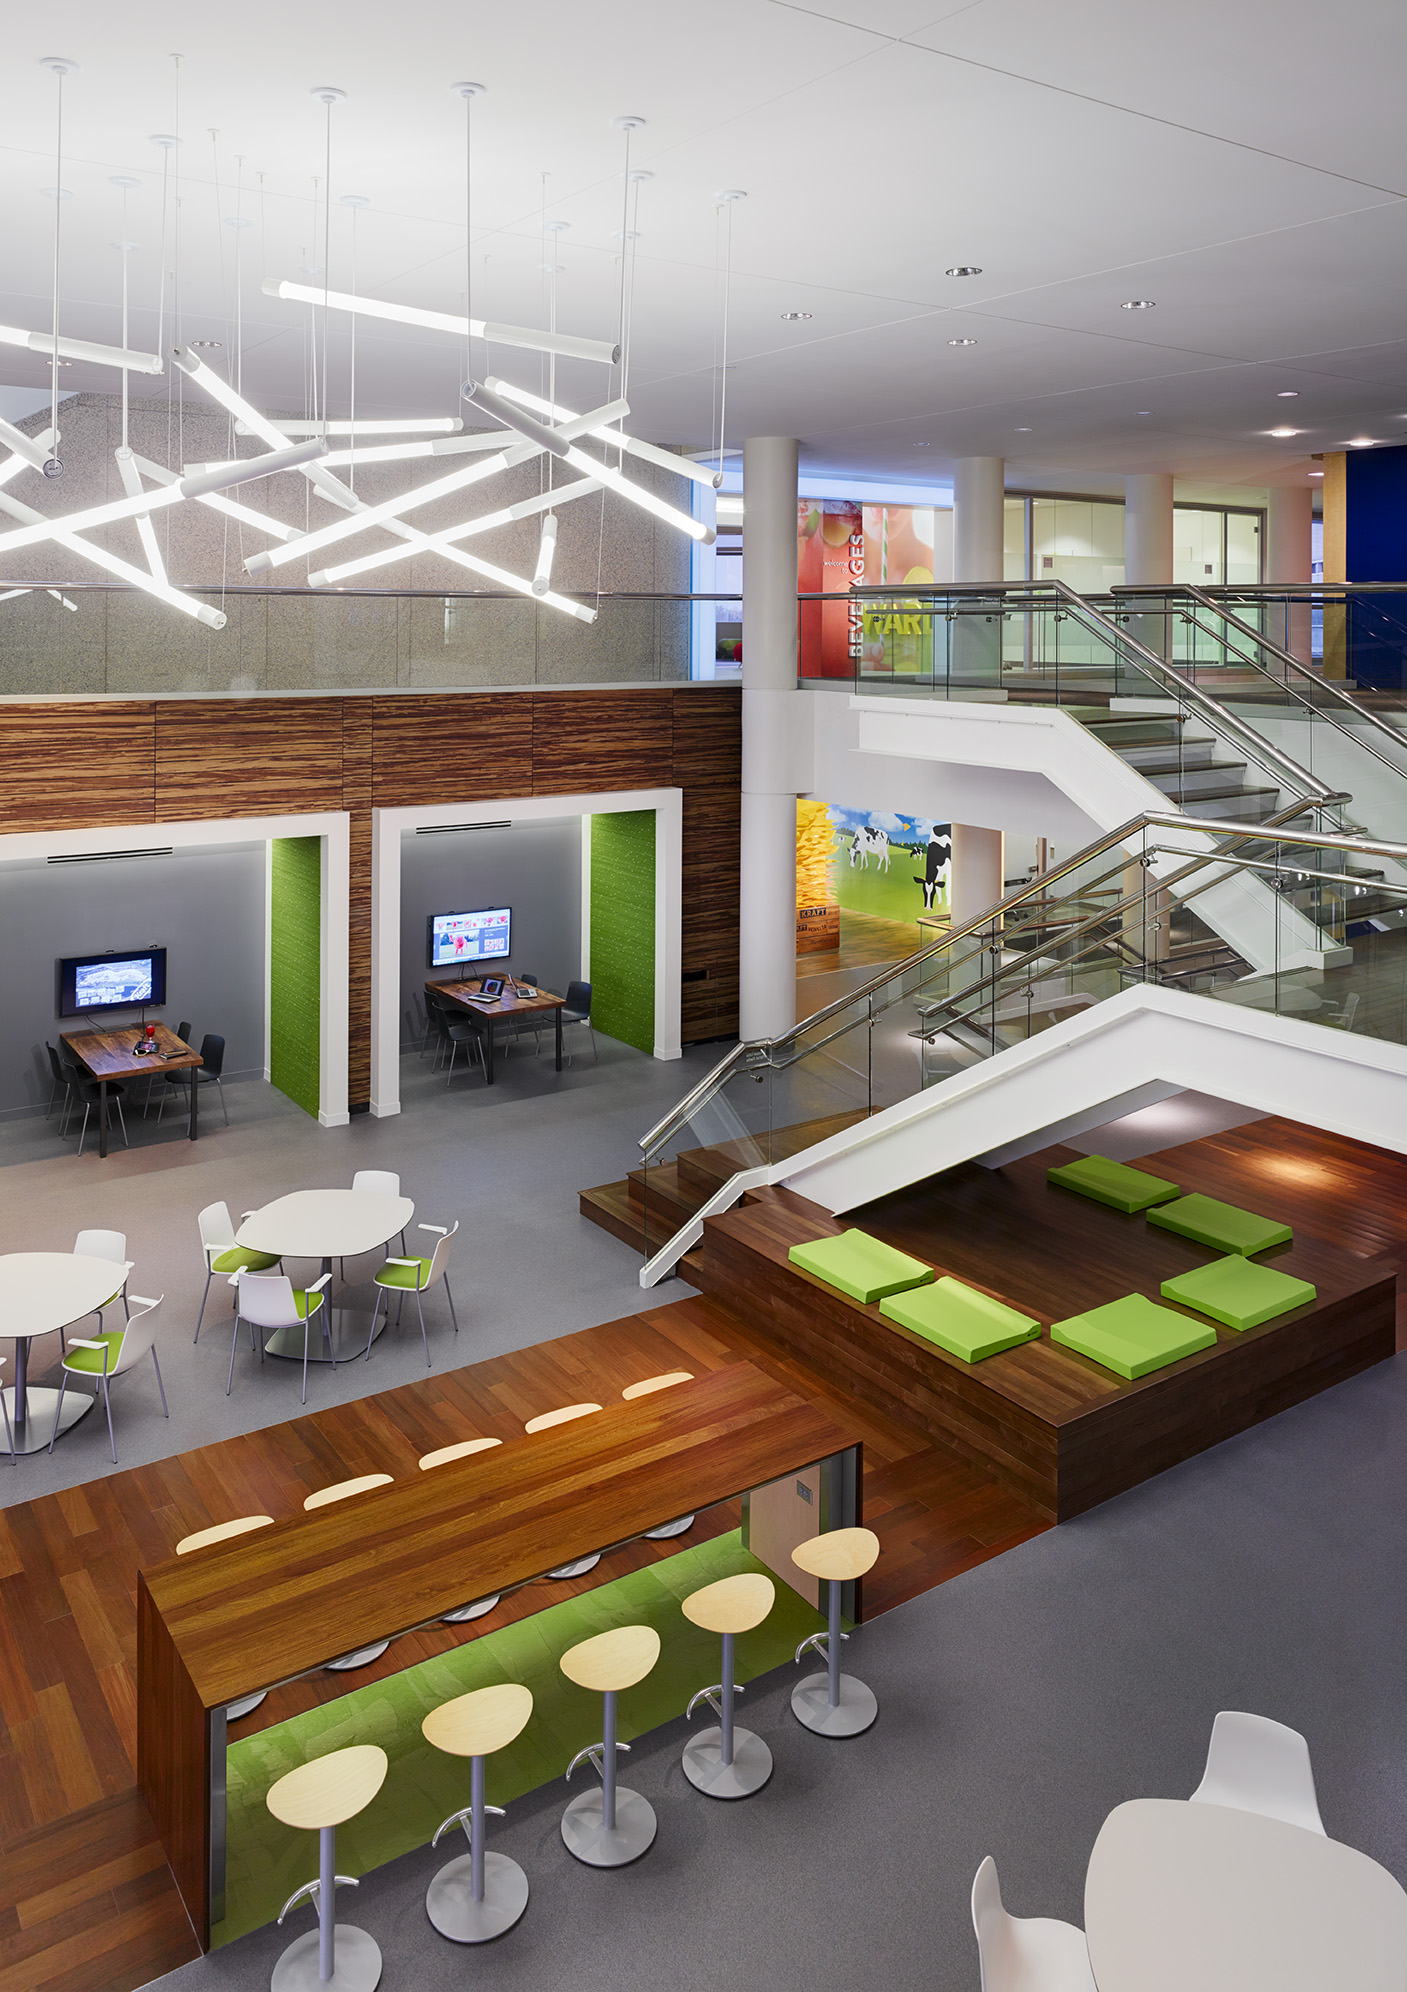 Kraft foods 2014 design excellence awards american institute of architects - Kraft foods chicago office ...